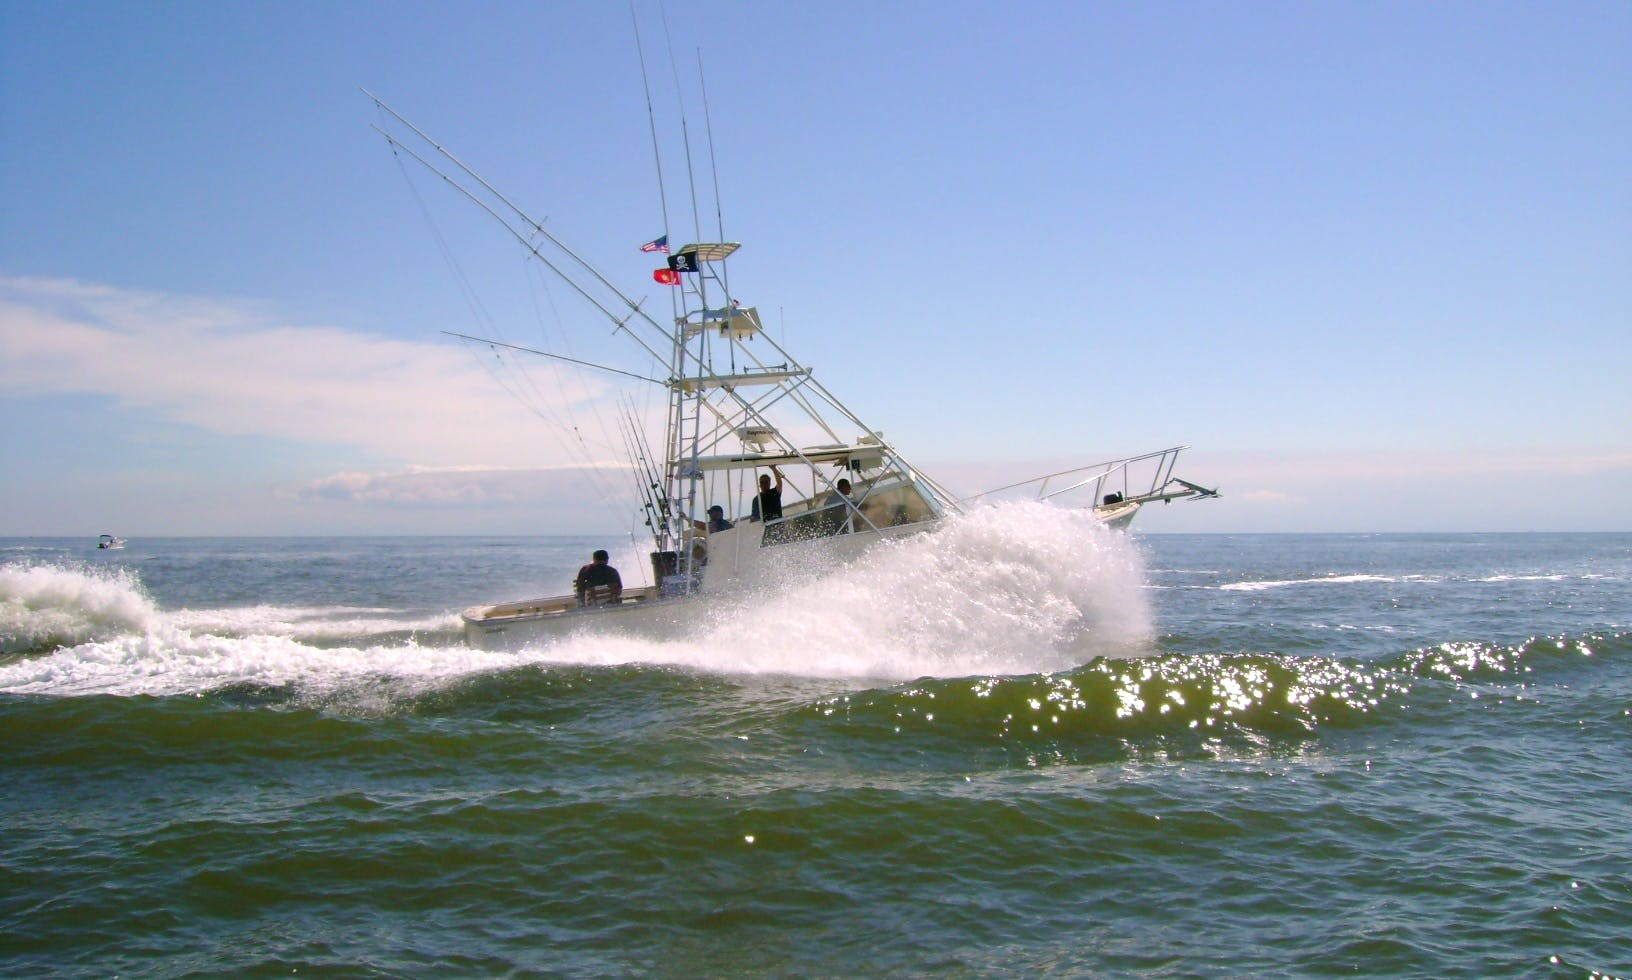 Exciting Deep Sea Fishing Charter for 6 Anglers in Cape May, New Jersey